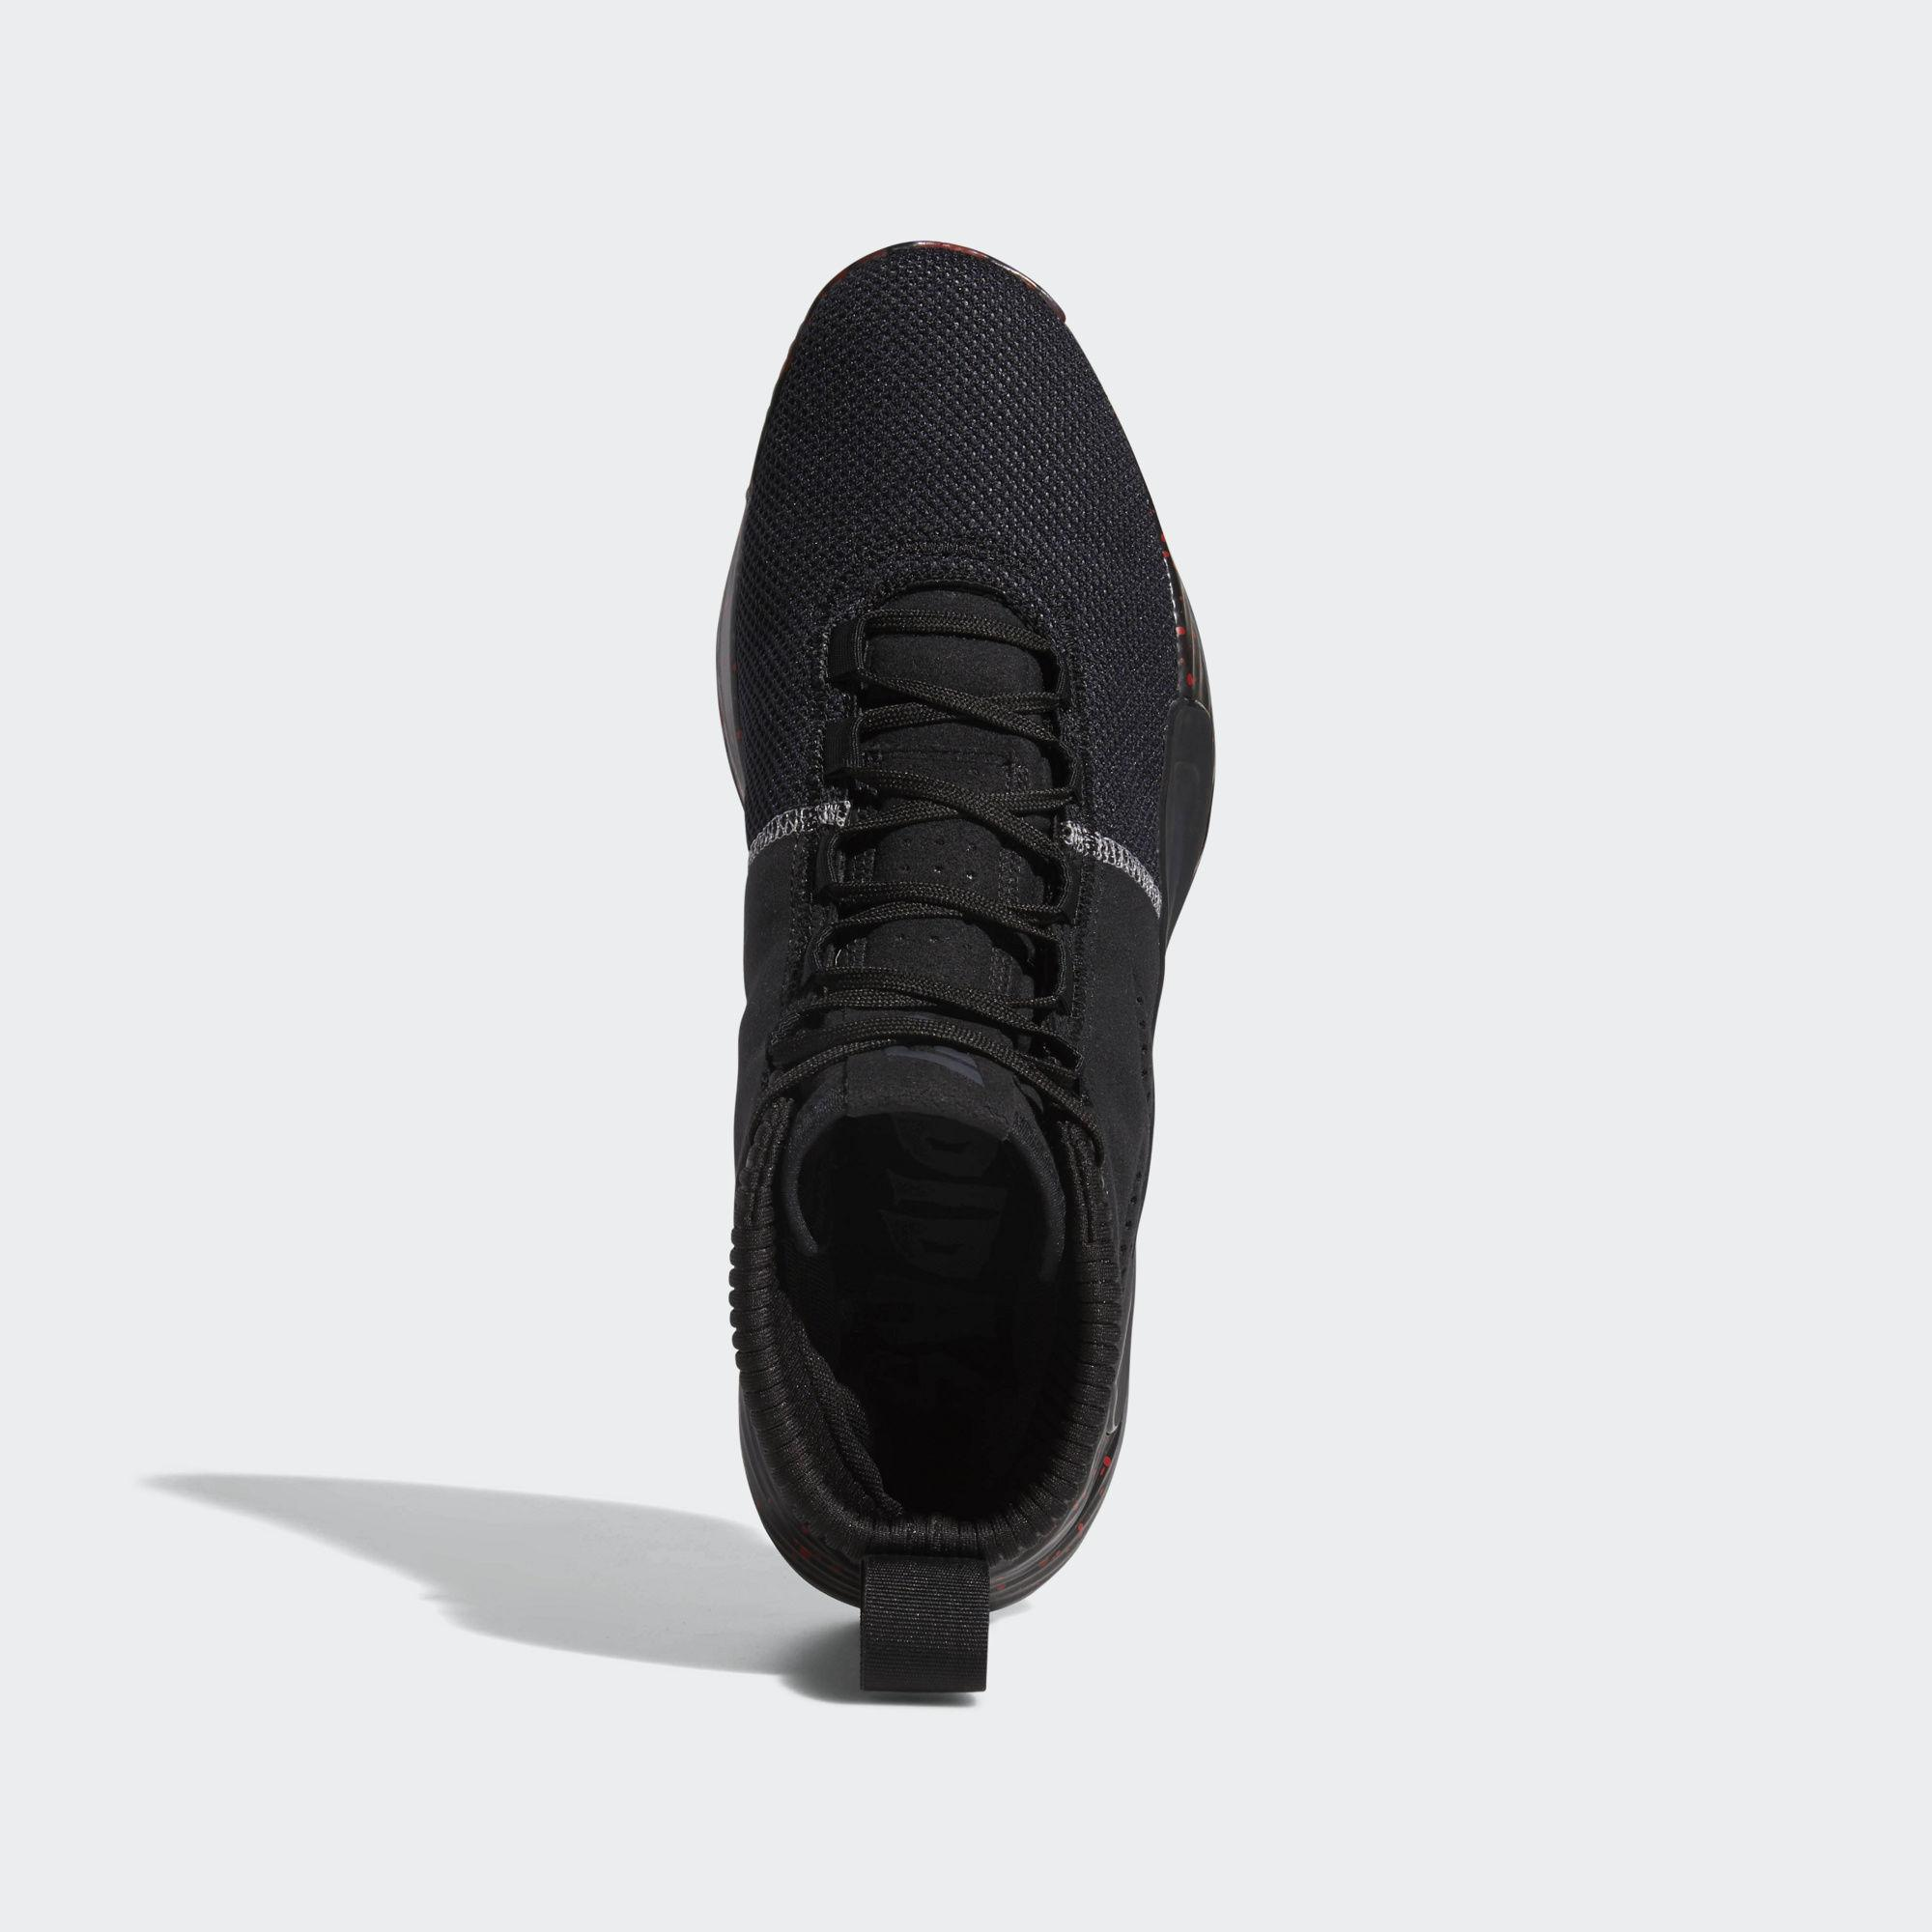 online store ed083 06fdc Adidas - Black Dame 5 Shoes for Men - Lyst. View fullscreen